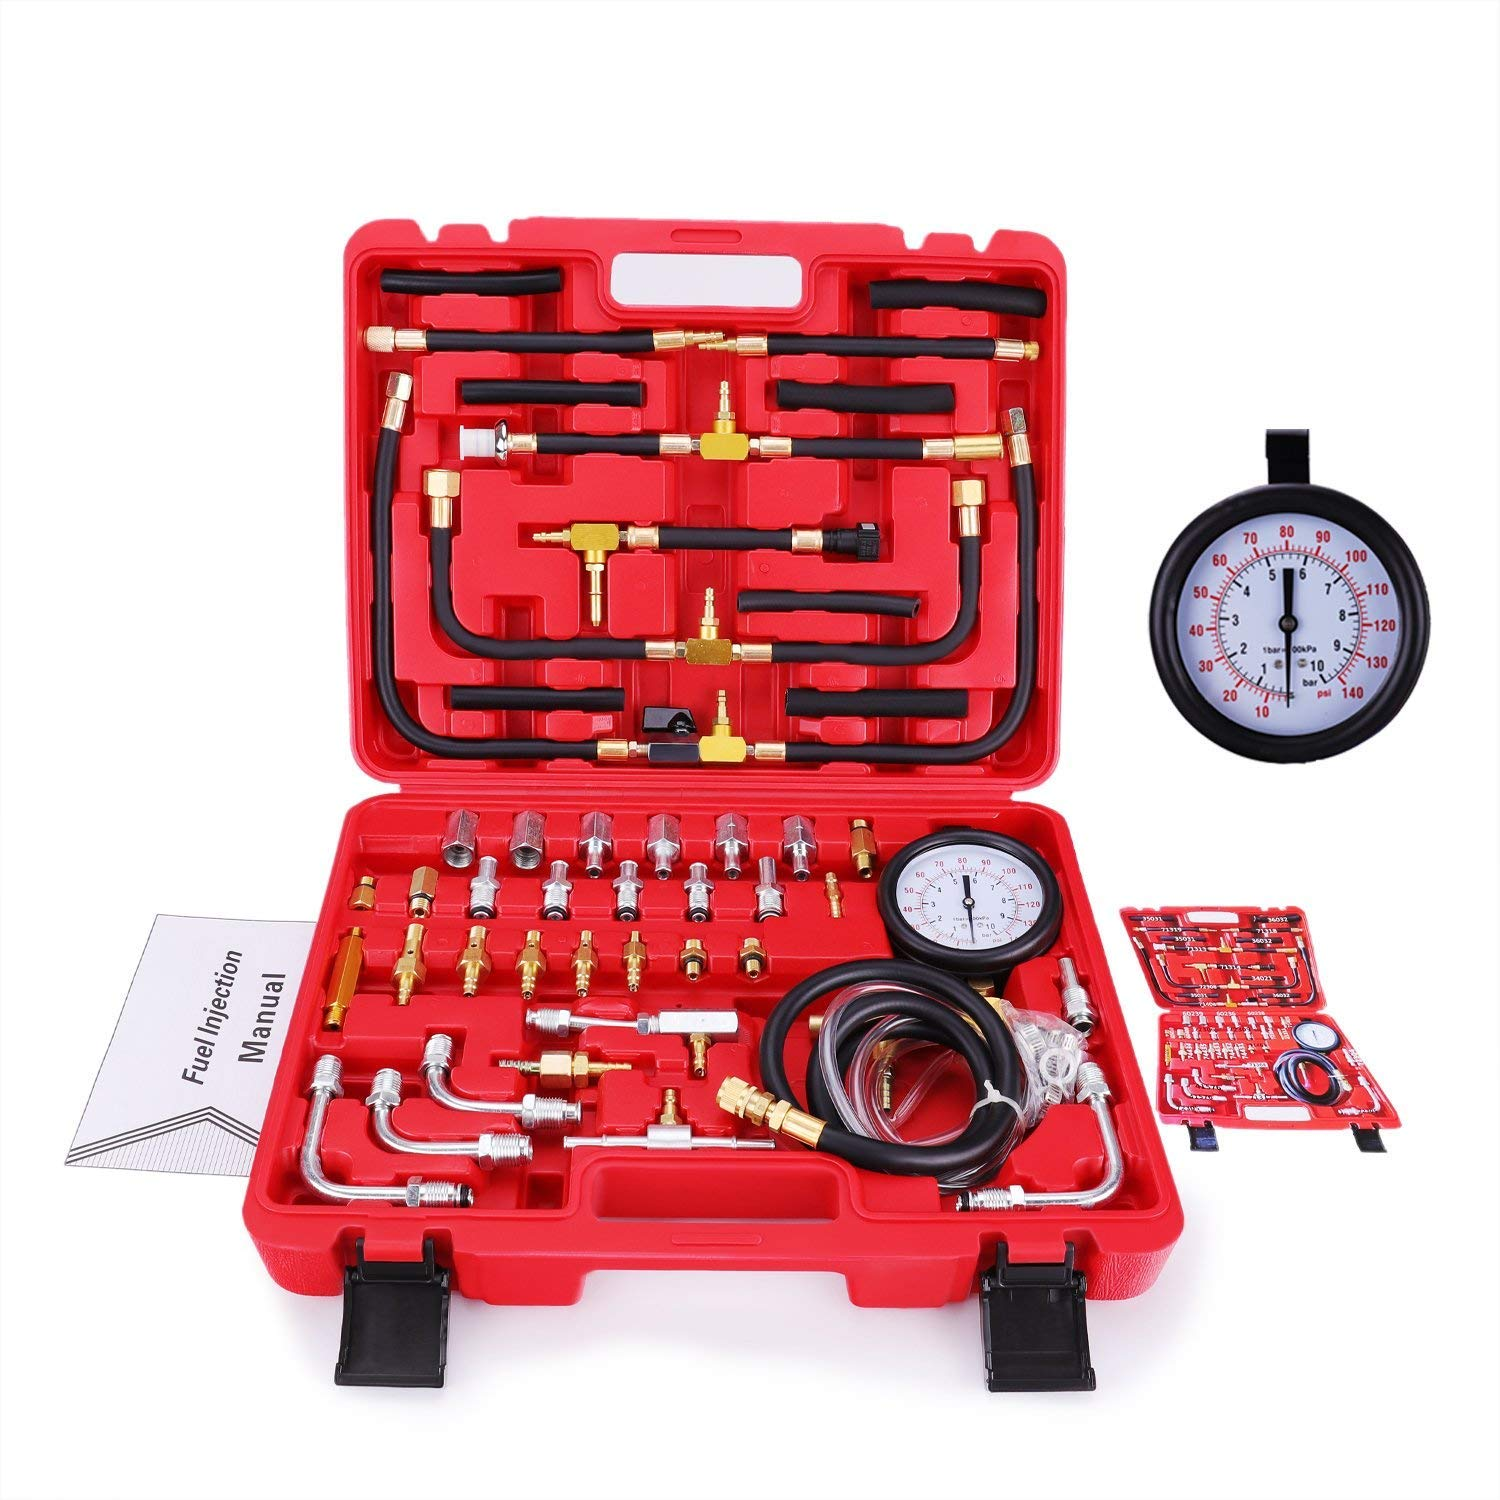 BETOOLL Pro Fuel Injection Pressure Tester Kit